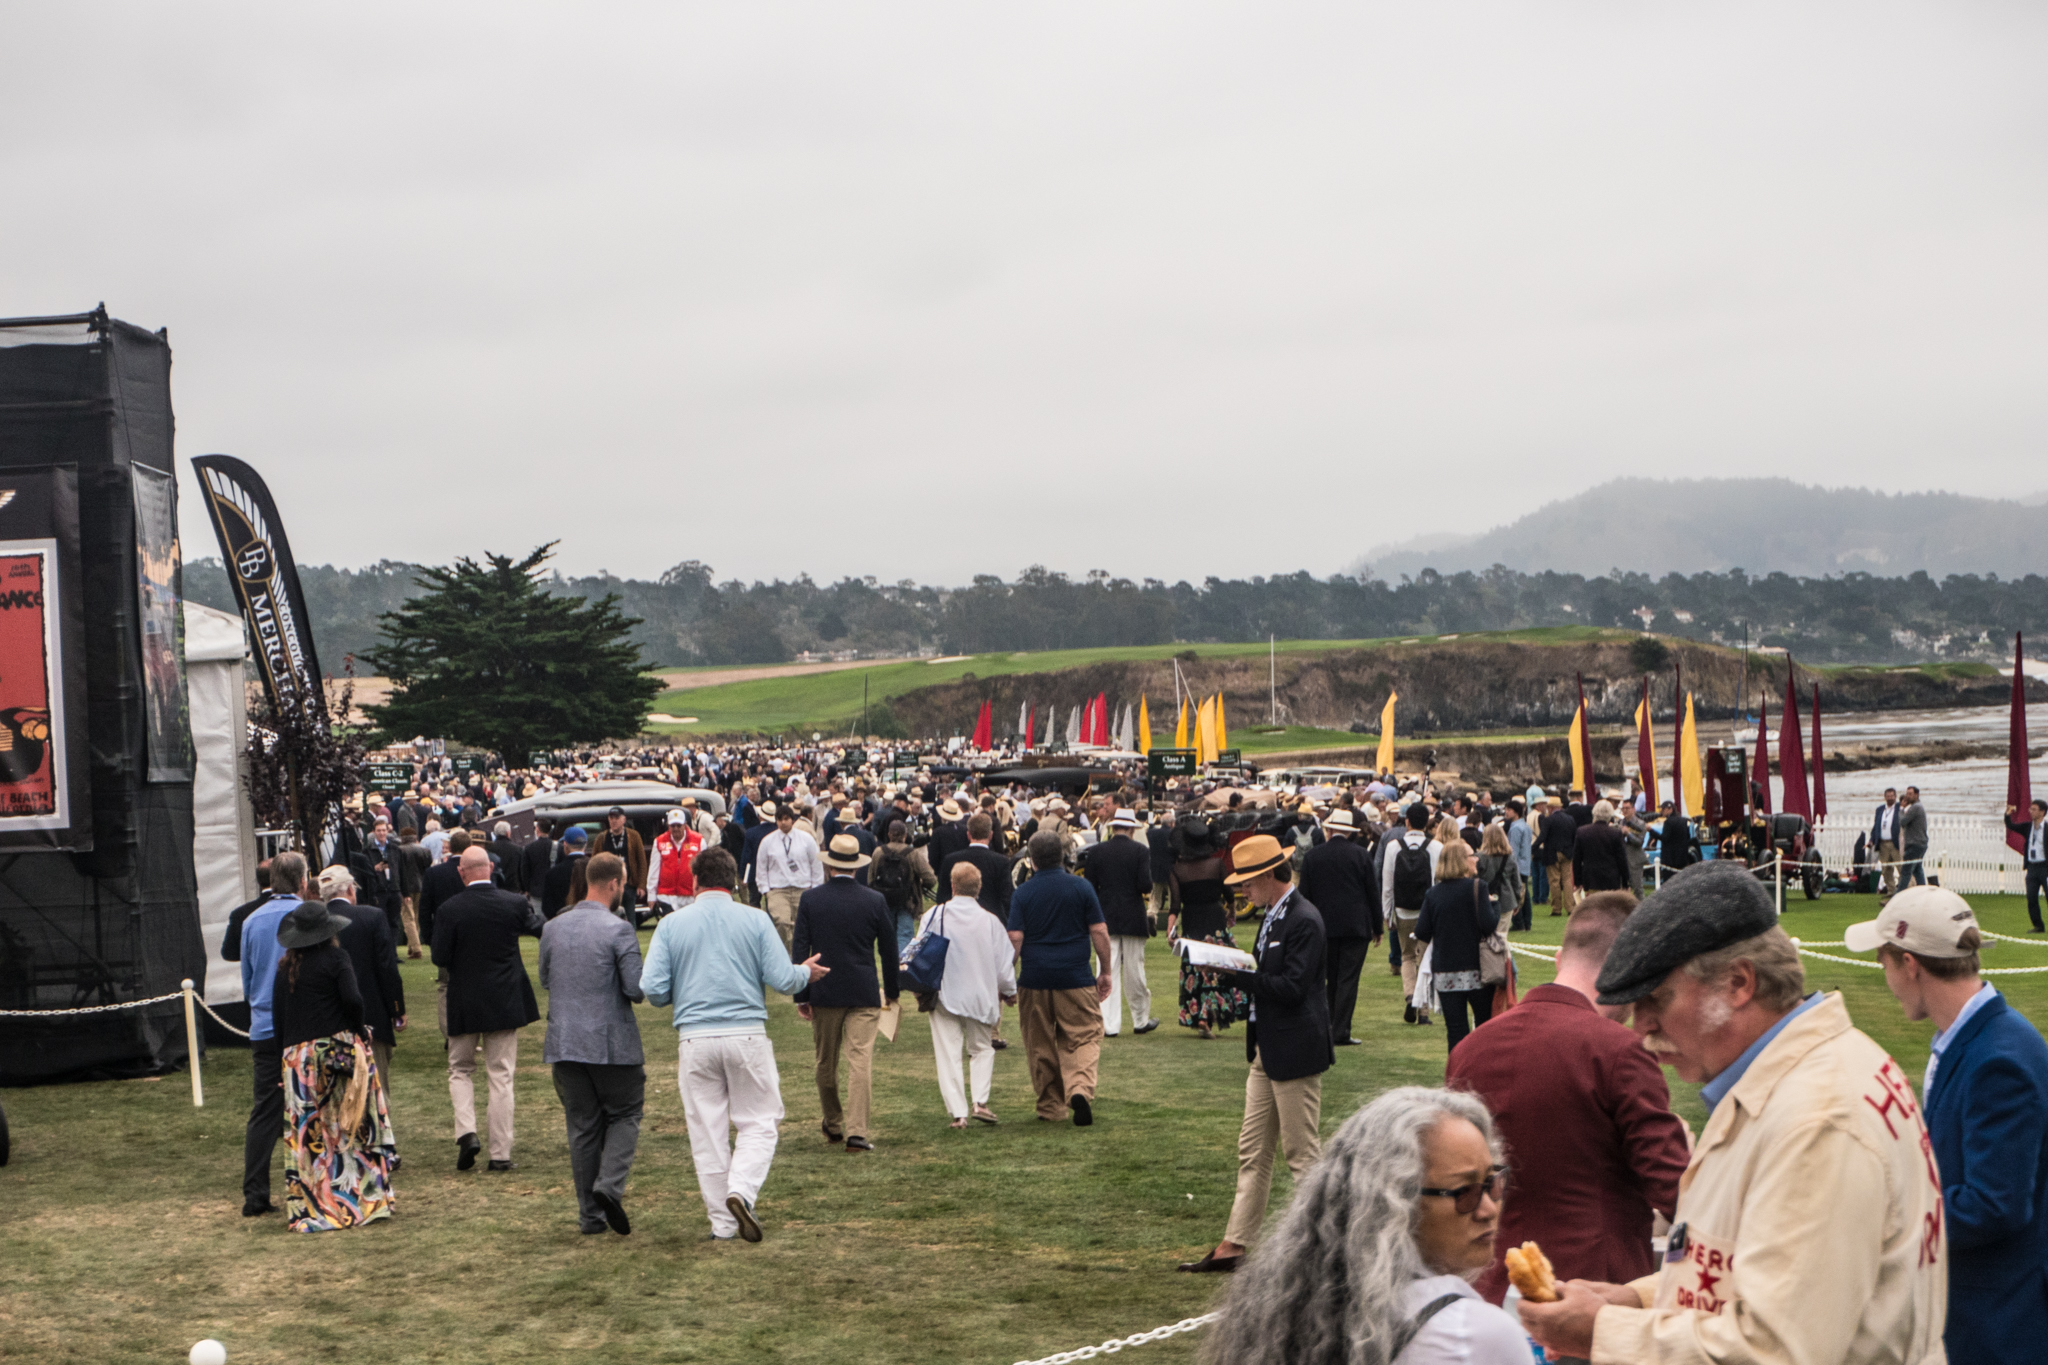 They tell me that this place is famous for golf. I wouldn't know anything about that, but it has been the home of an amazing car event since the 1950s.